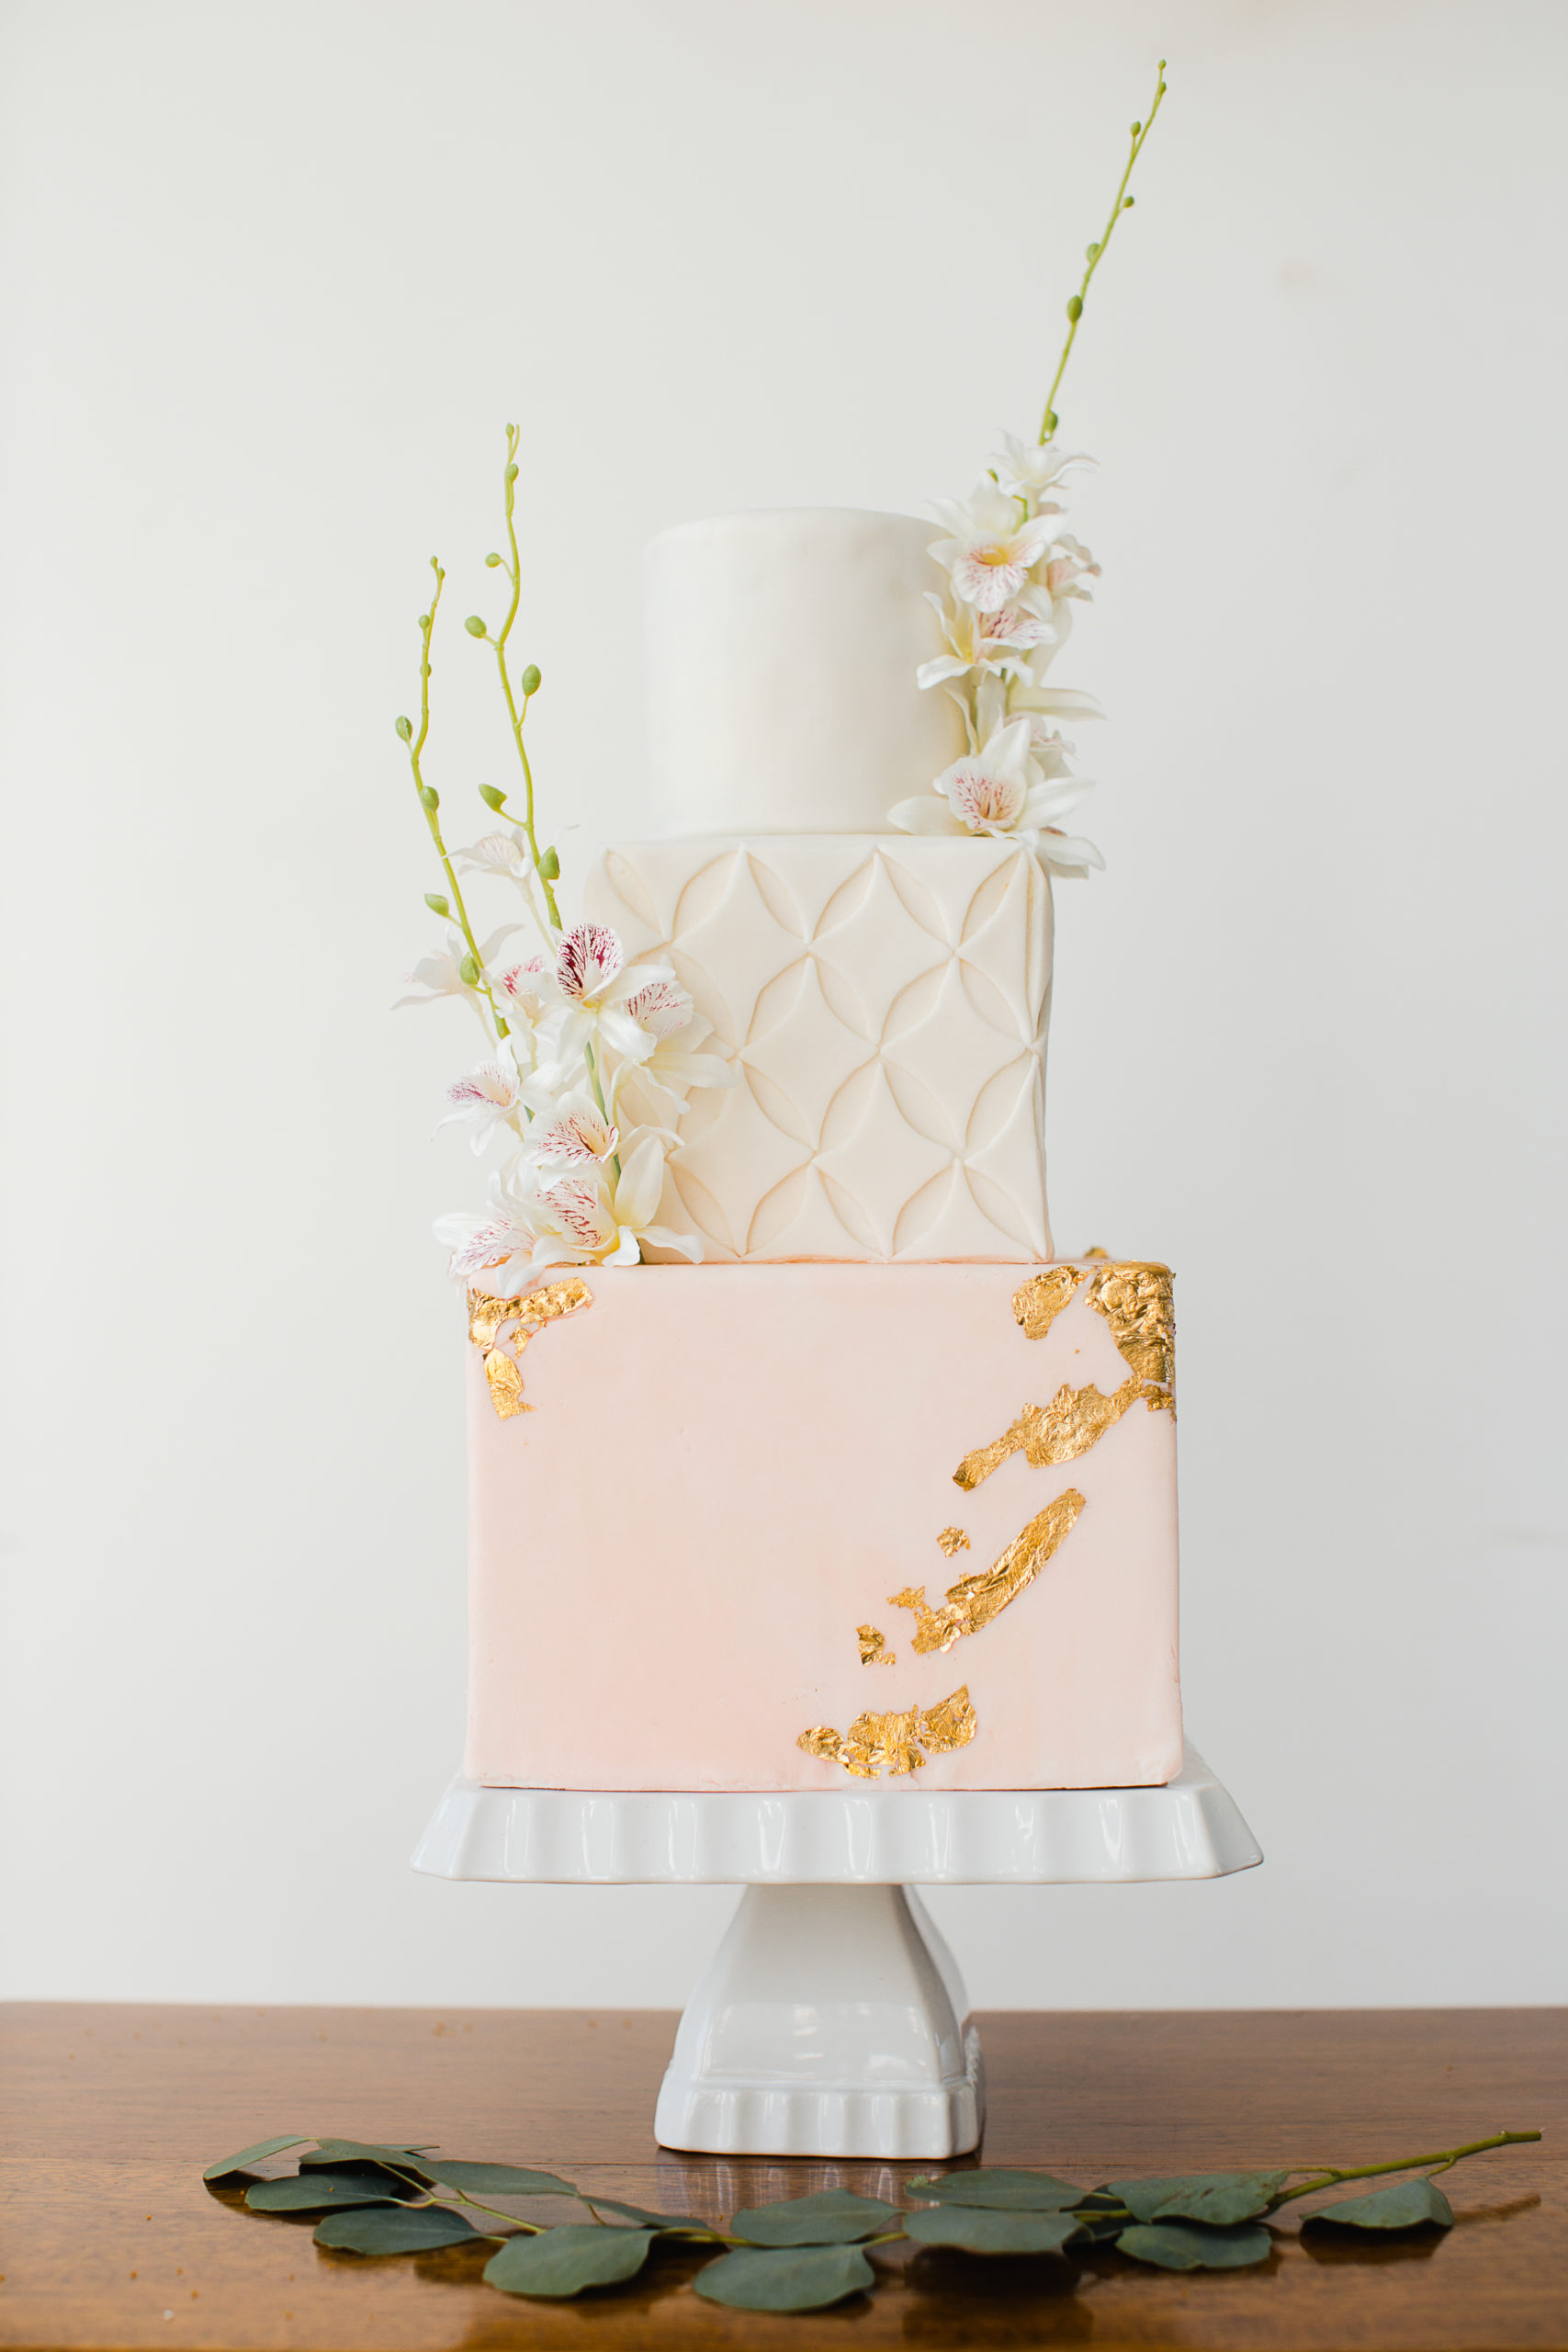 Peach and White Stacked Cake with Gold Emblossing and White Flowers by Schur to Please Vancouver Island